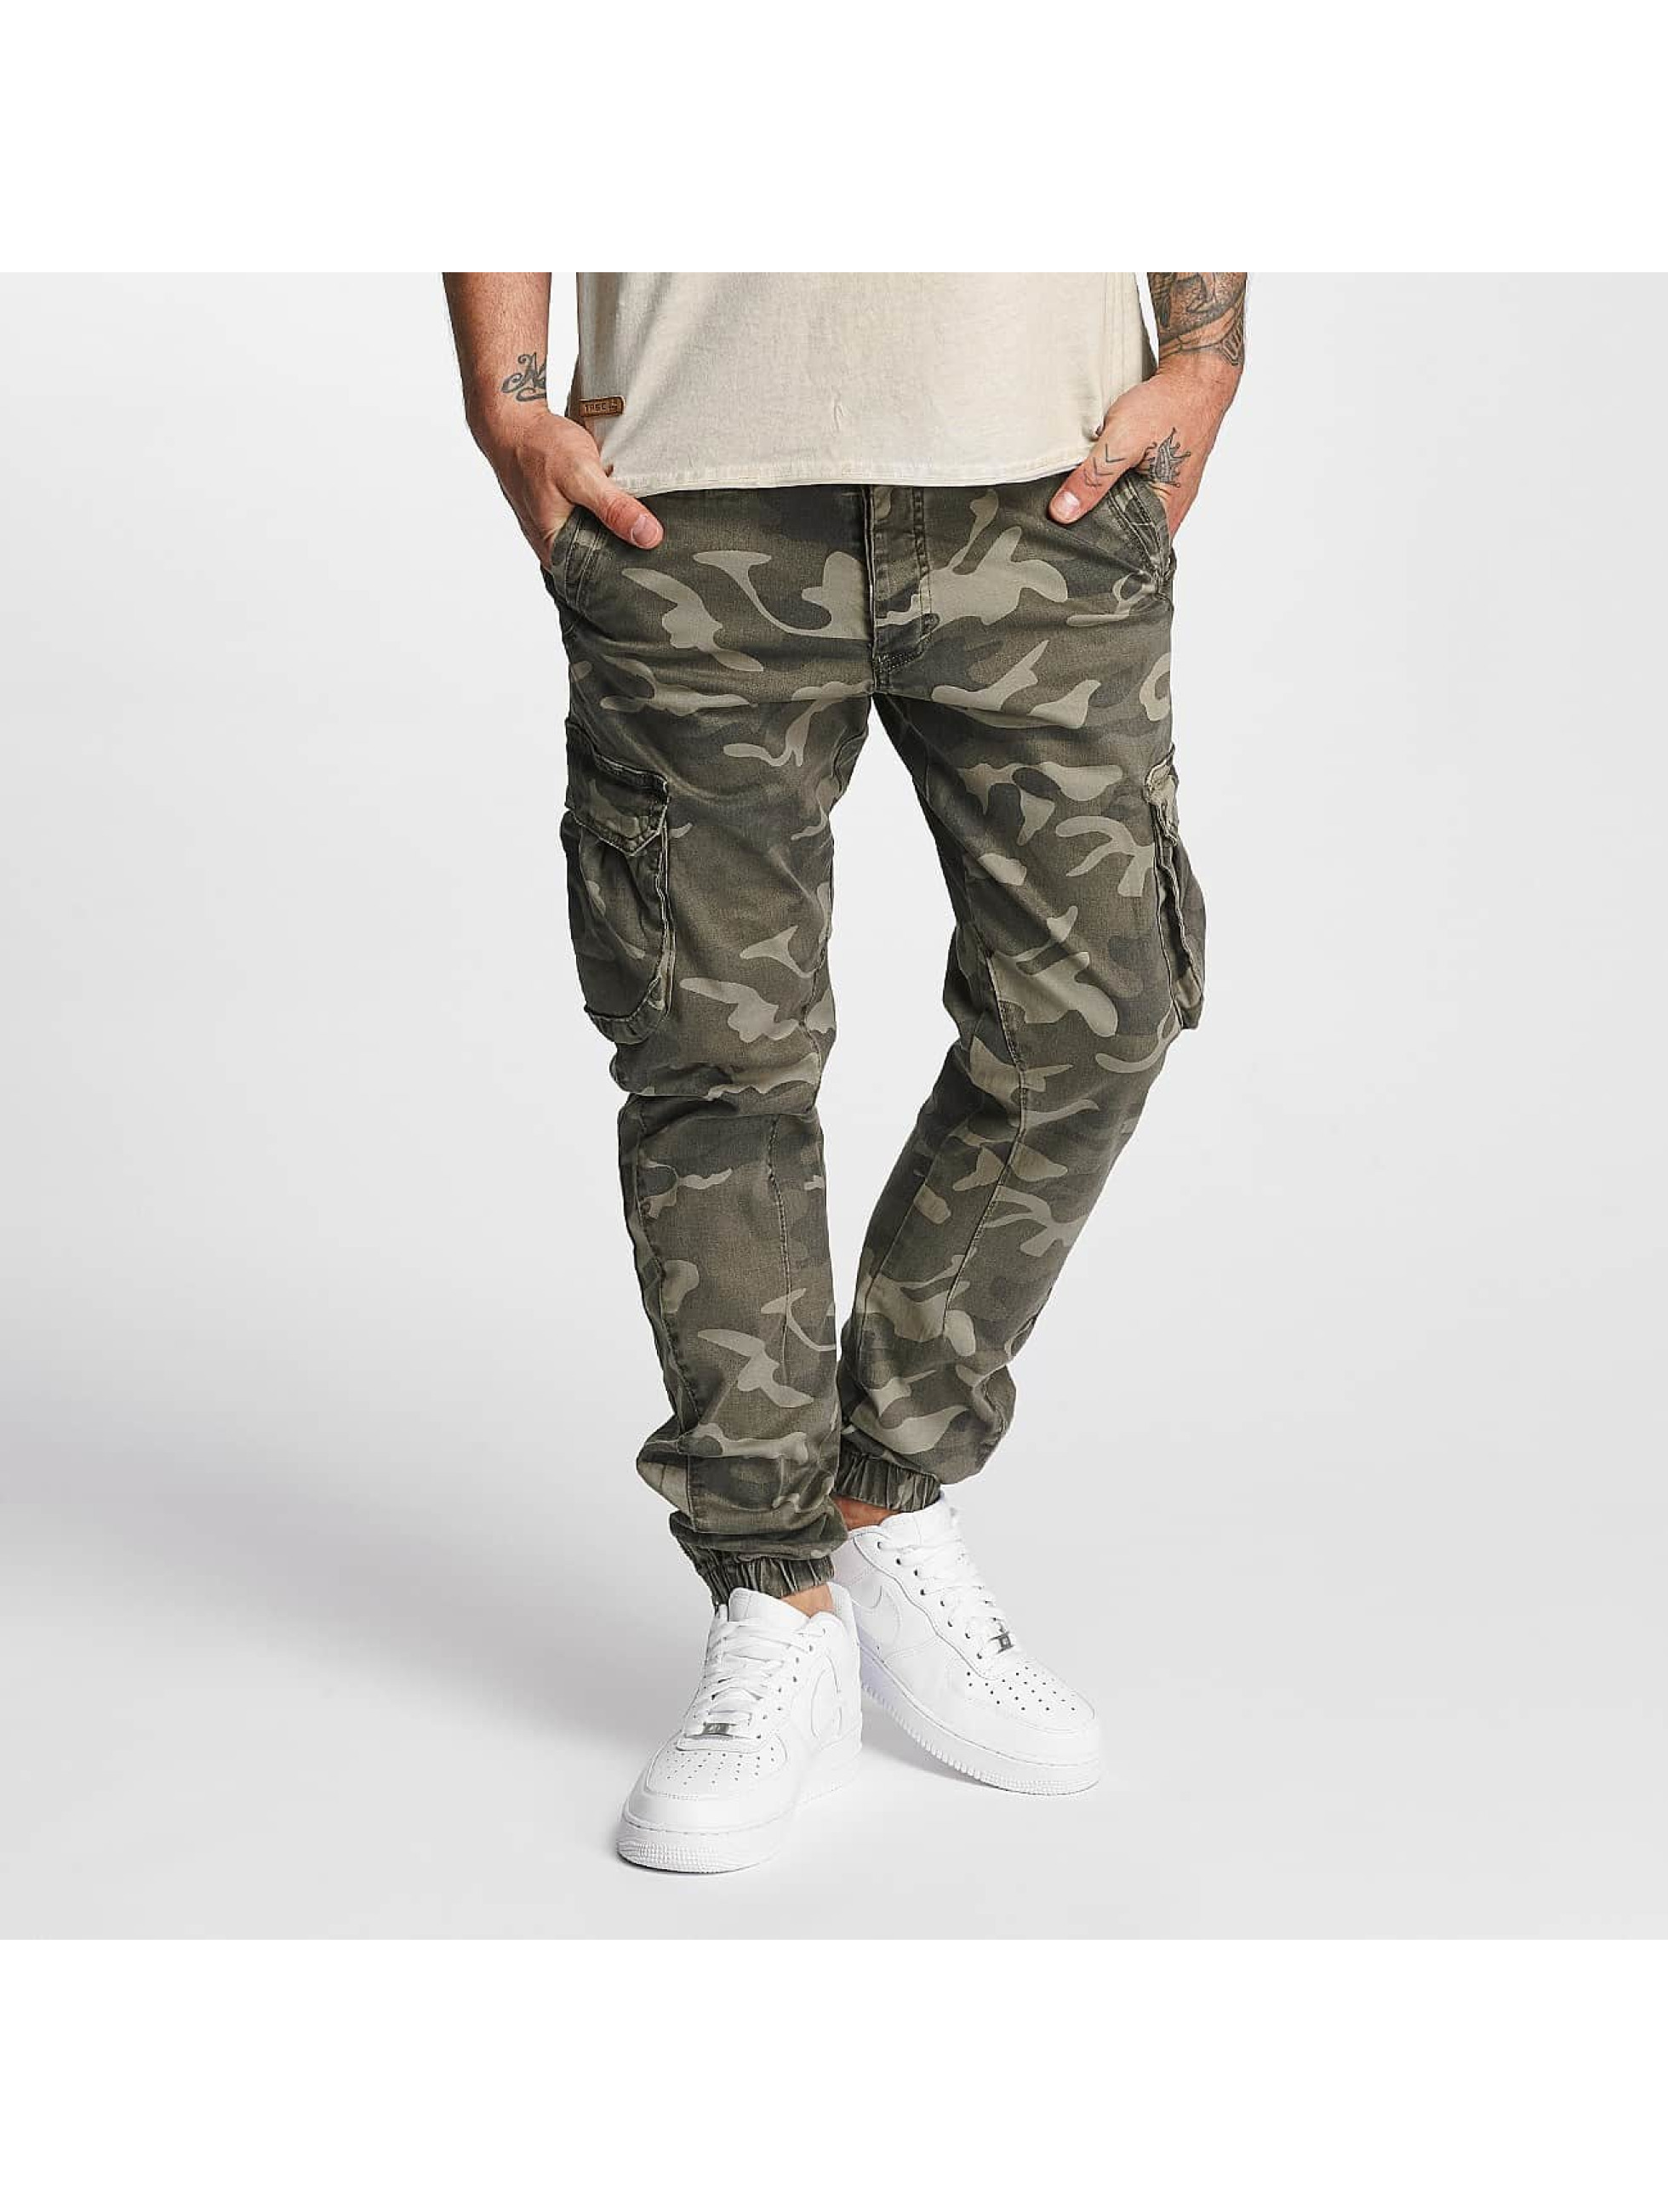 Red Bridge Cargo Army camouflage